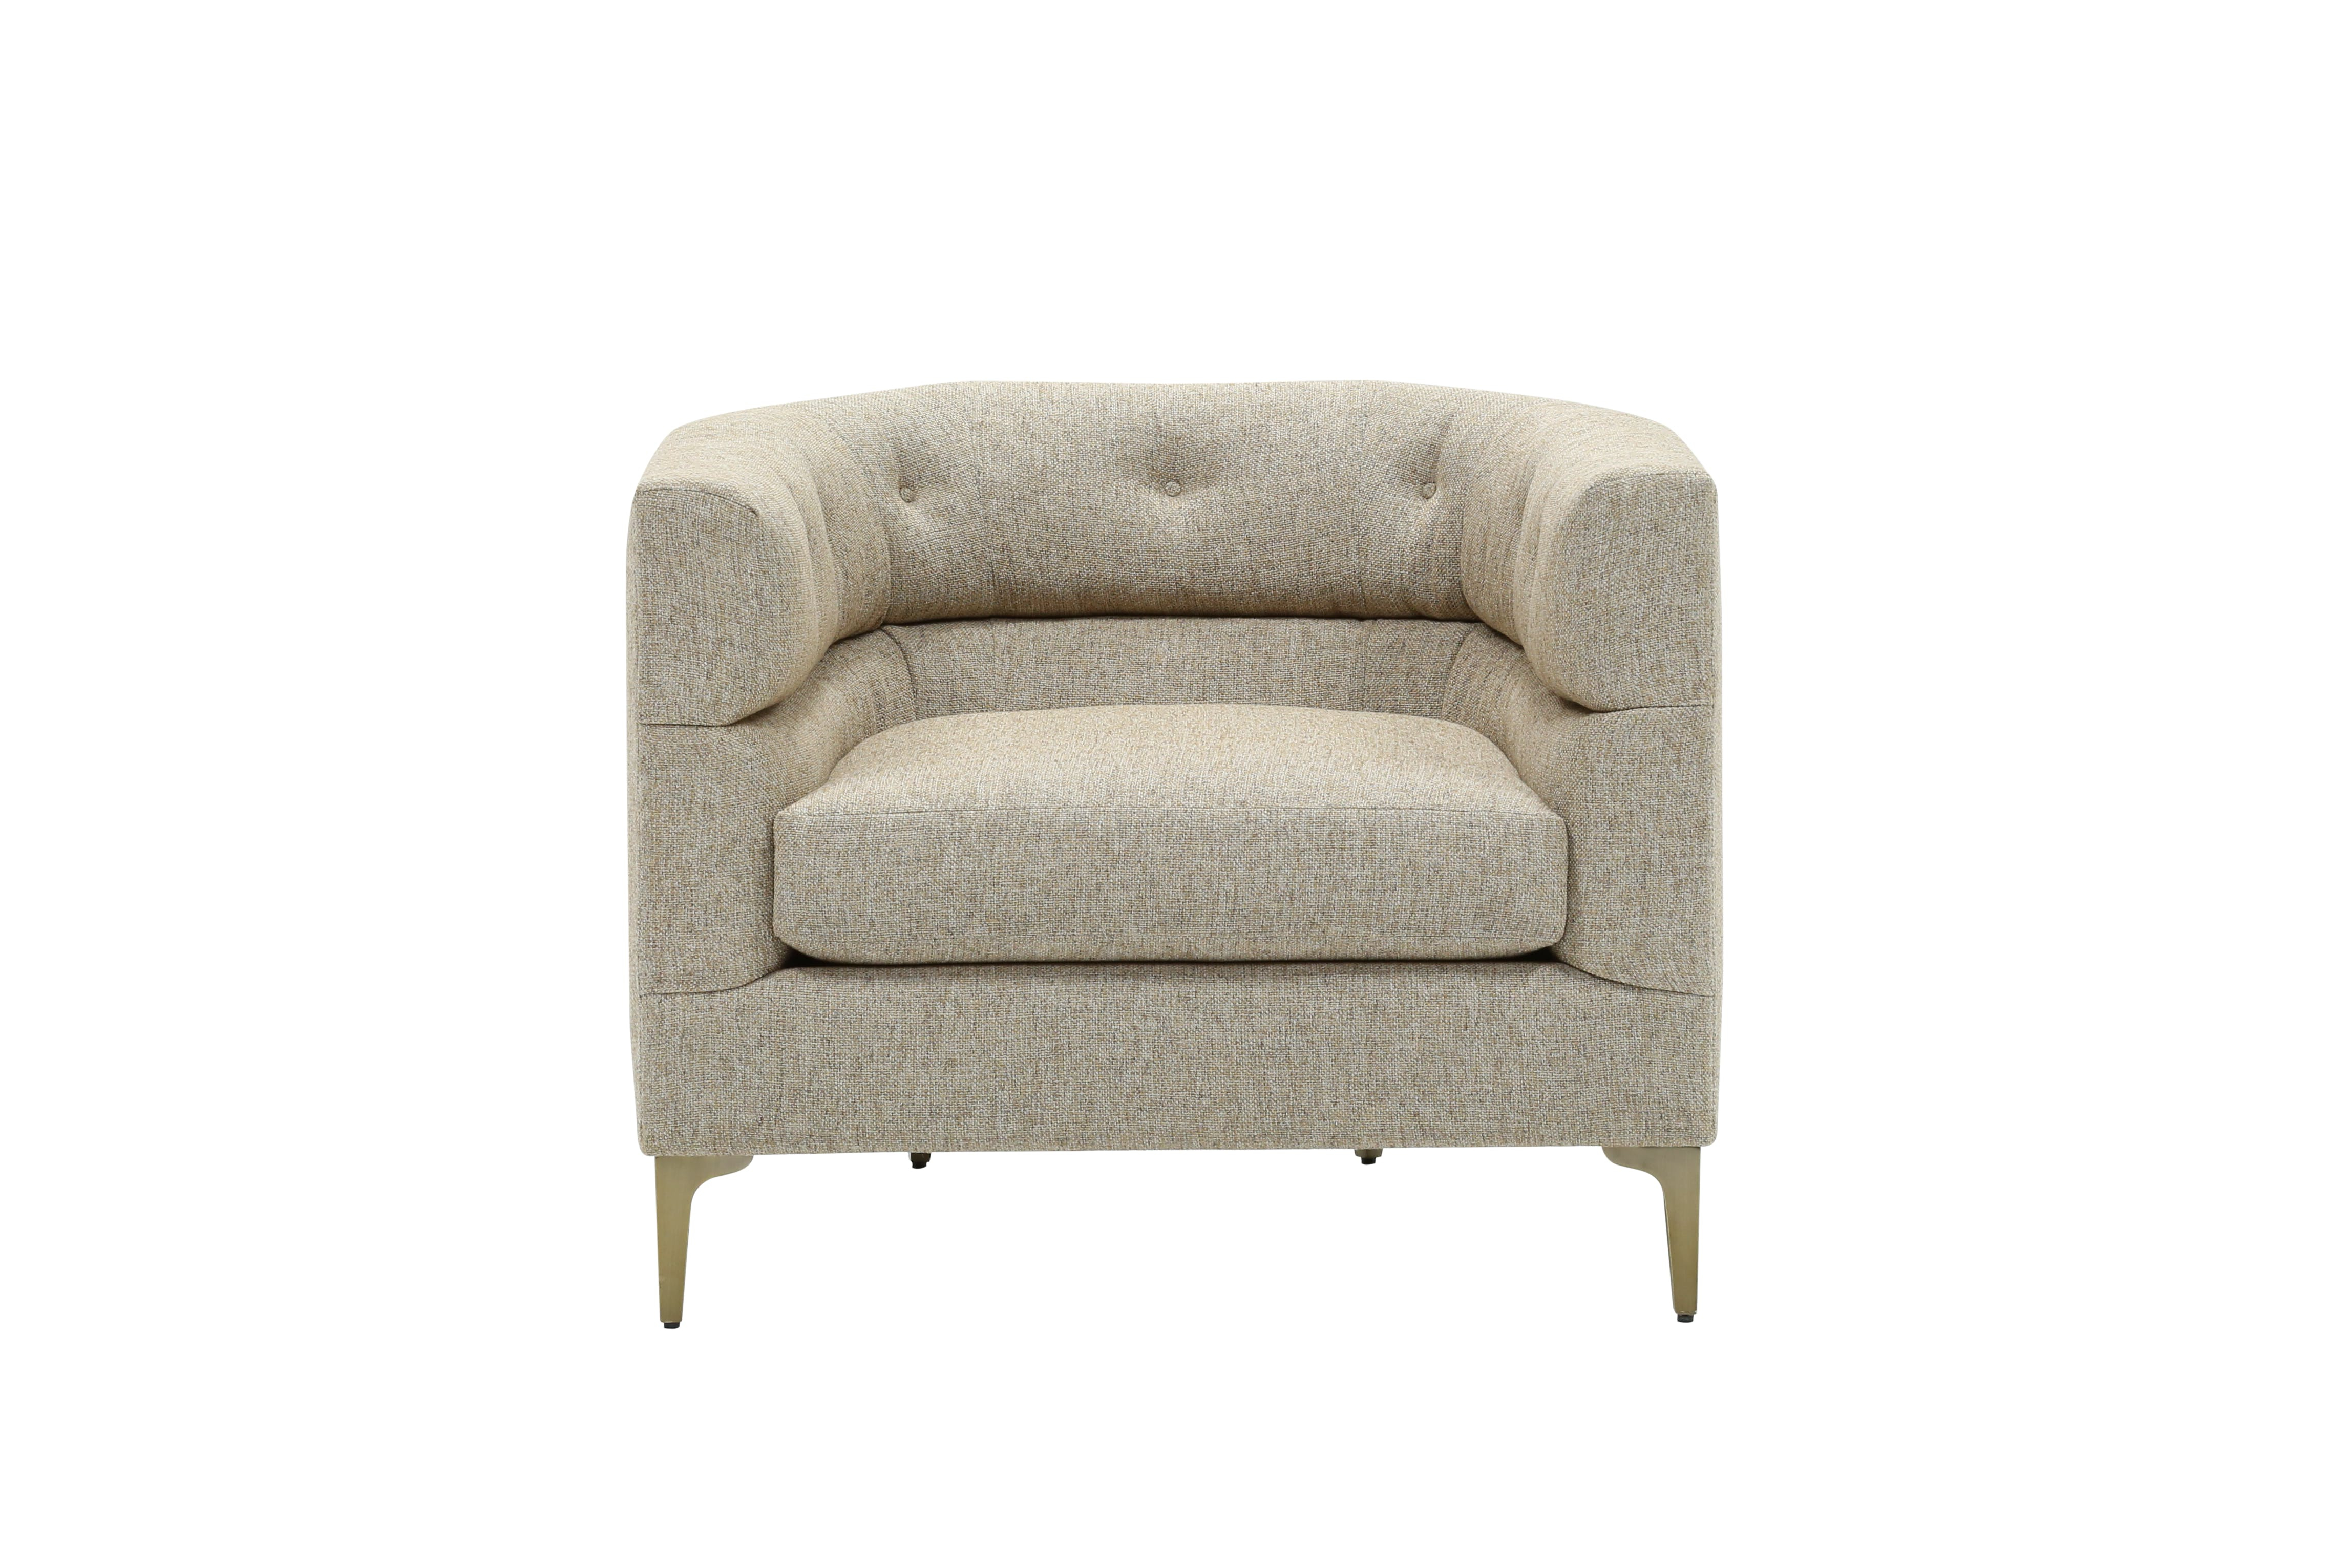 Liv Arm Sofa Chairs By Nate Berkus And Jeremiah Brent With Most Recently Released Nate Berkus Just Launched A Home Collection With Hubby Jeremiah (View 2 of 20)